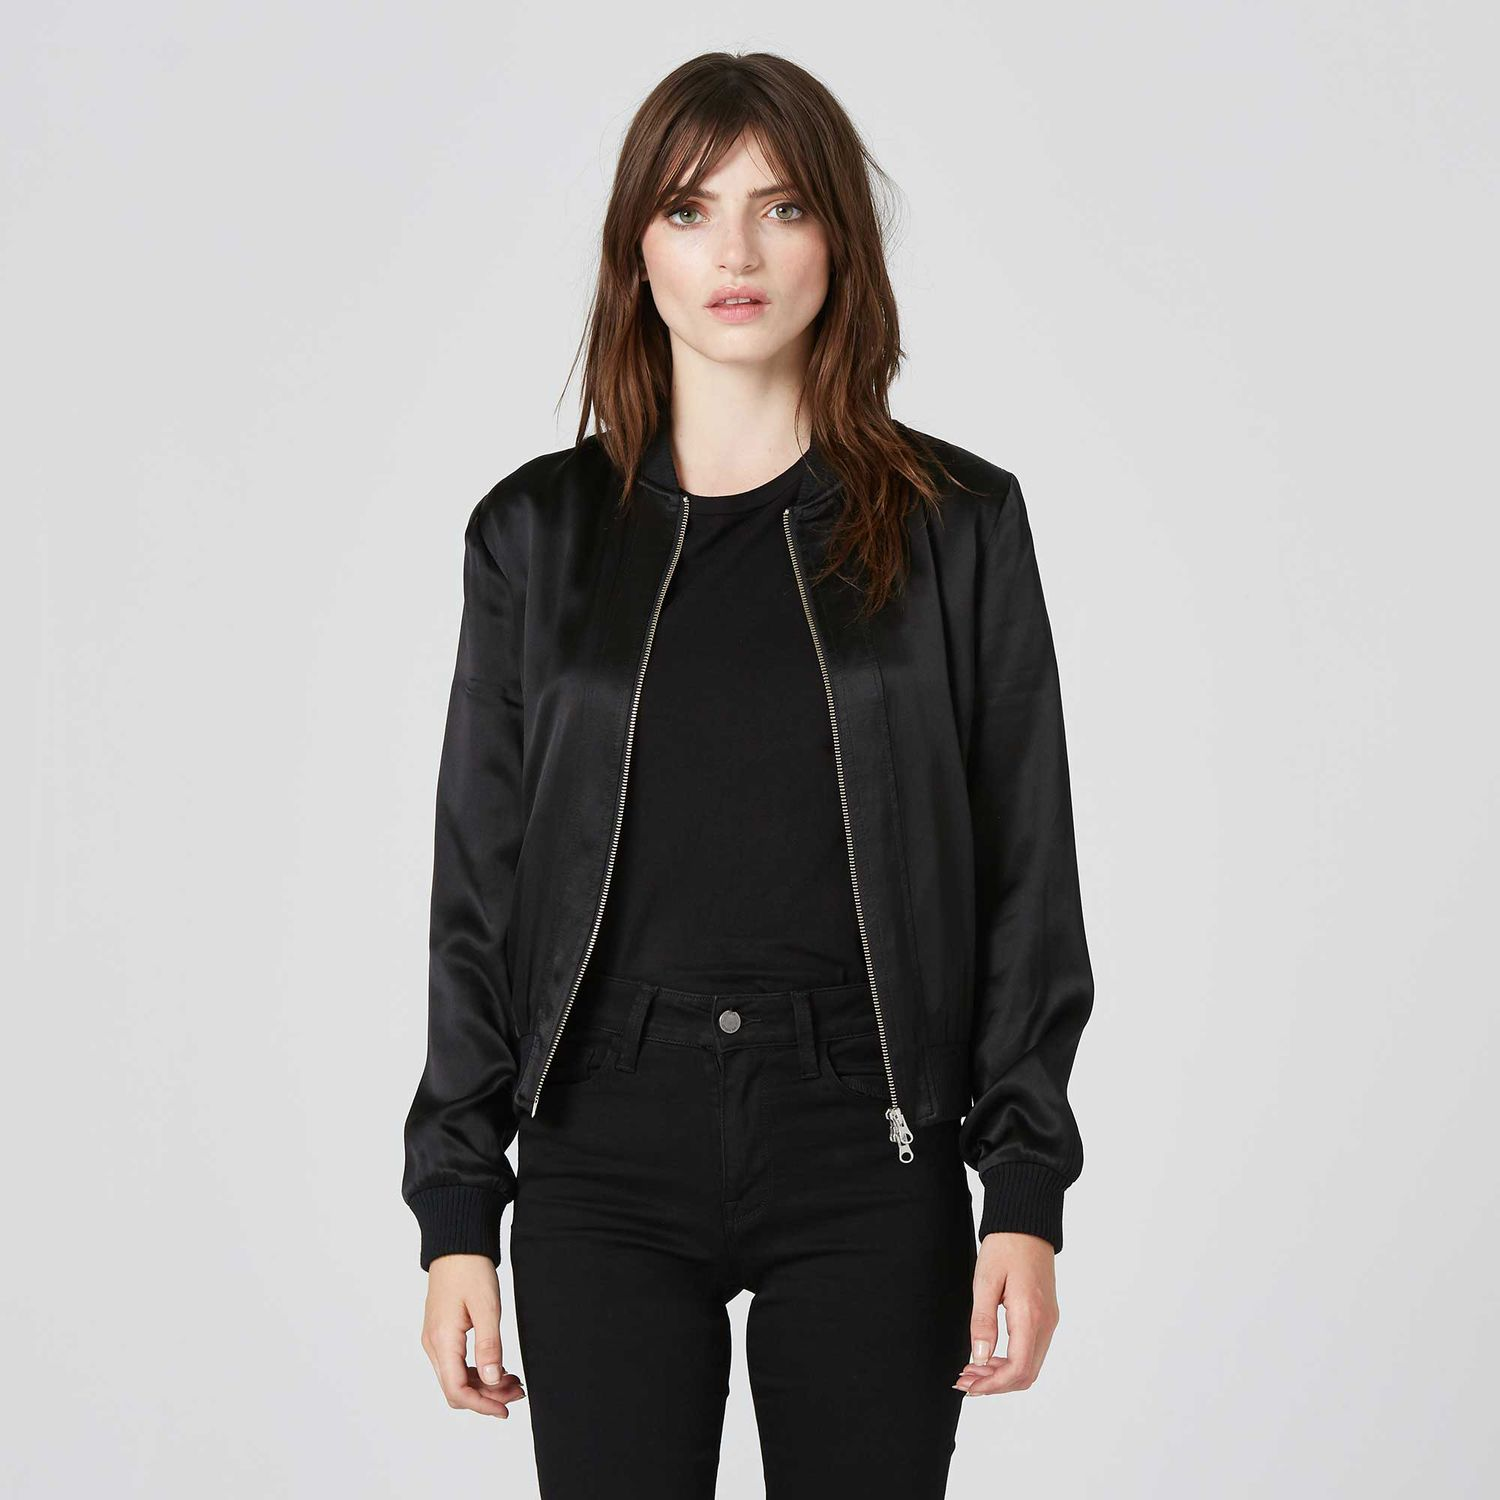 fe21334b8 Bomber Jackets for Women – Comfortable can be stylish in 2019 ...